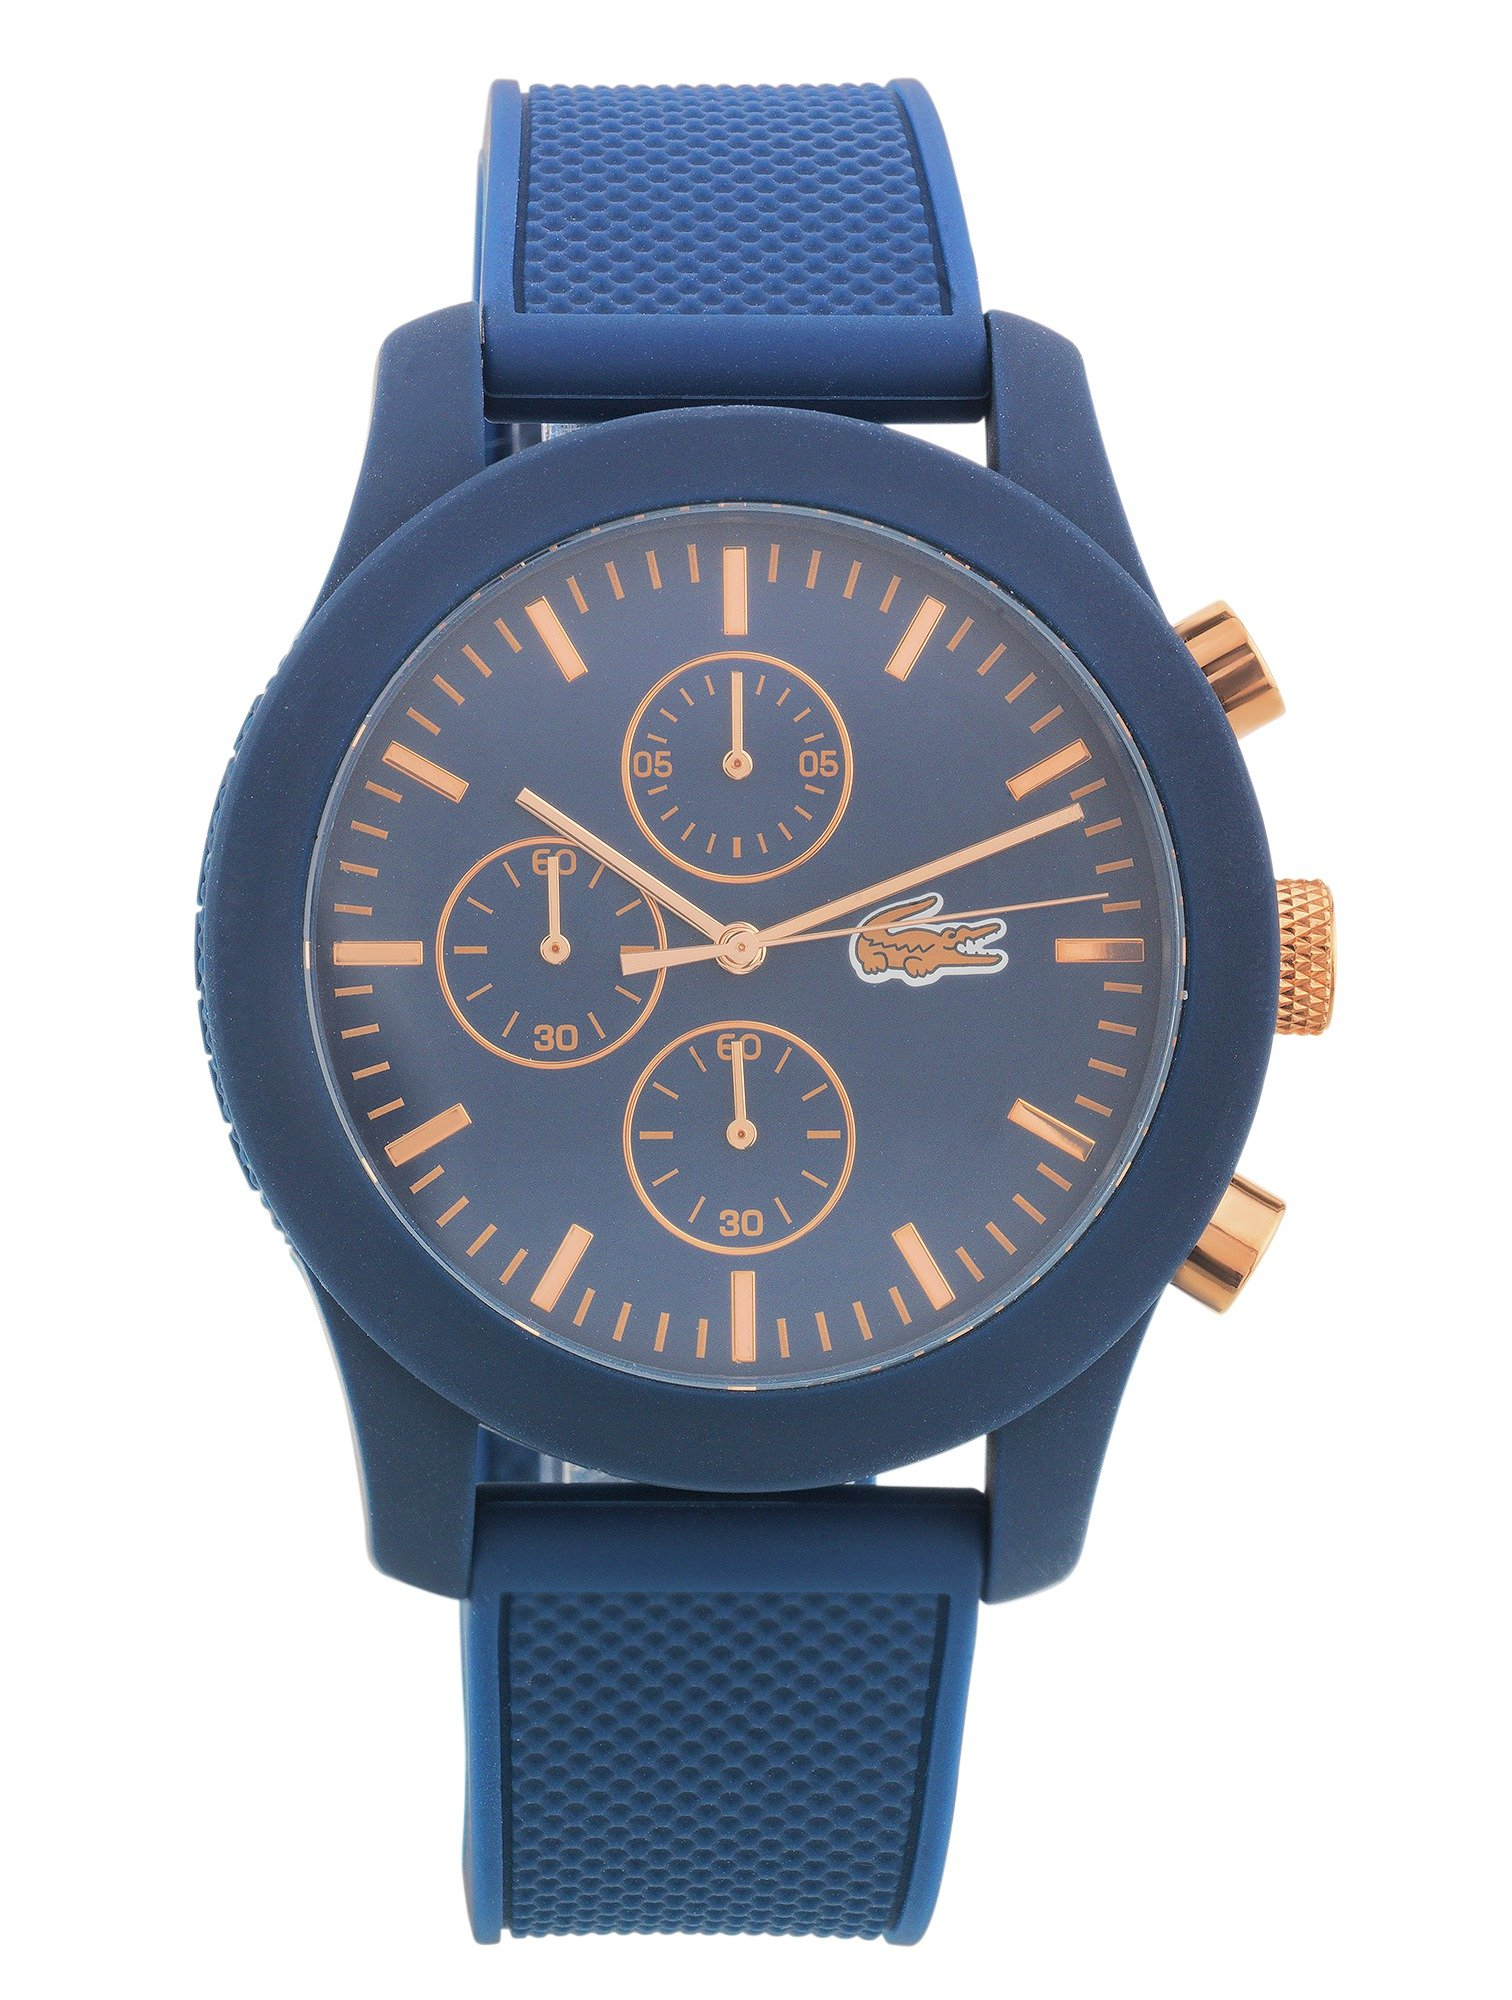 Lacoste 12.12 Men's Blue Silicone Strap Chronograph Watch